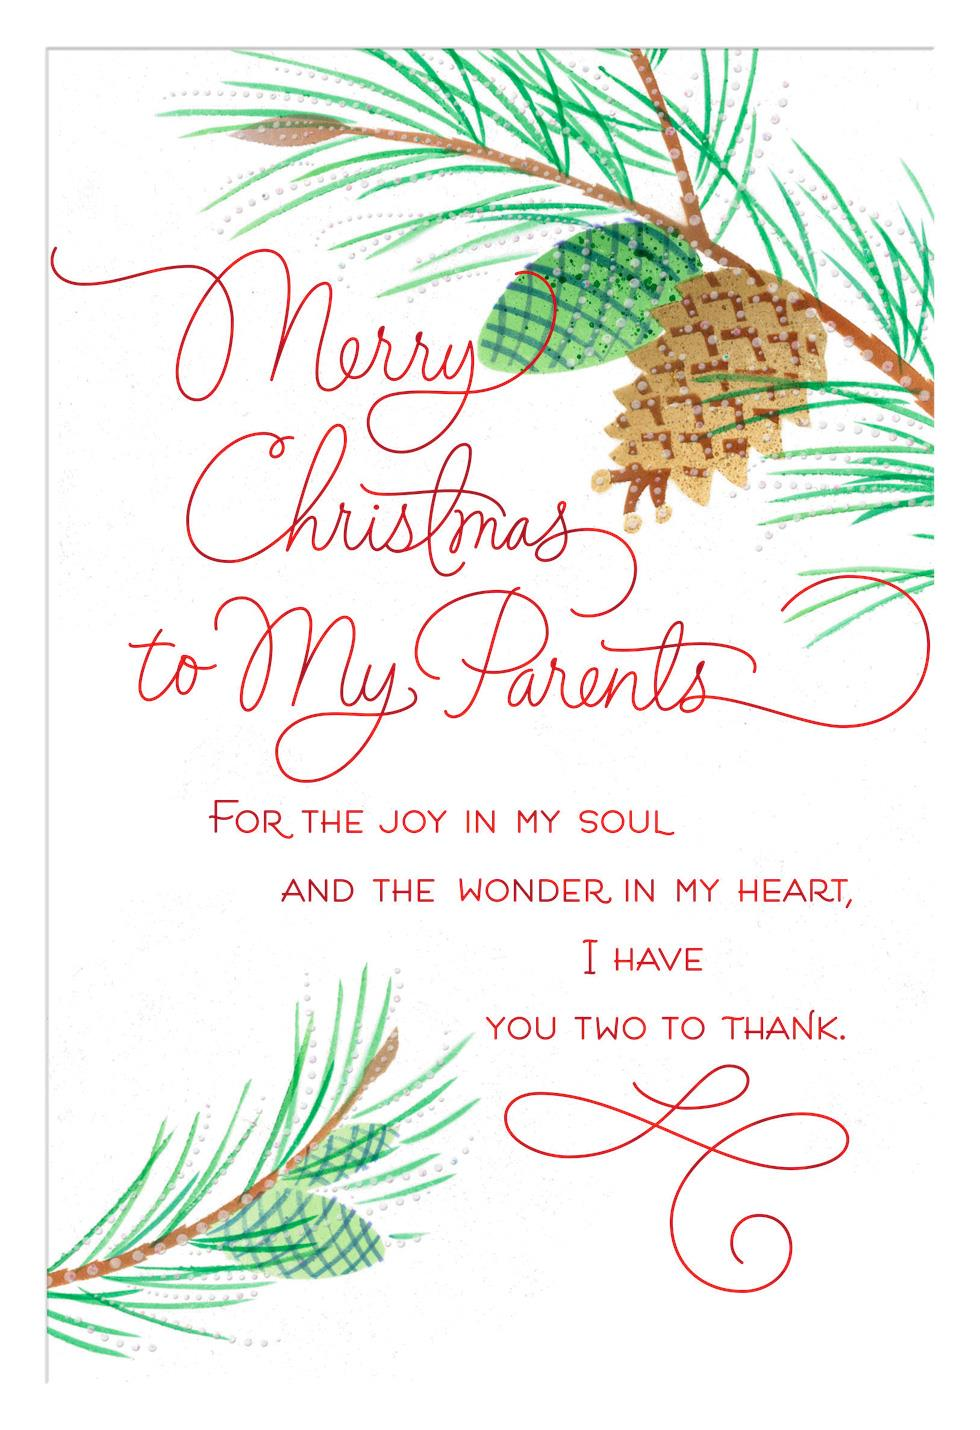 joy in my soul christmas card for parents